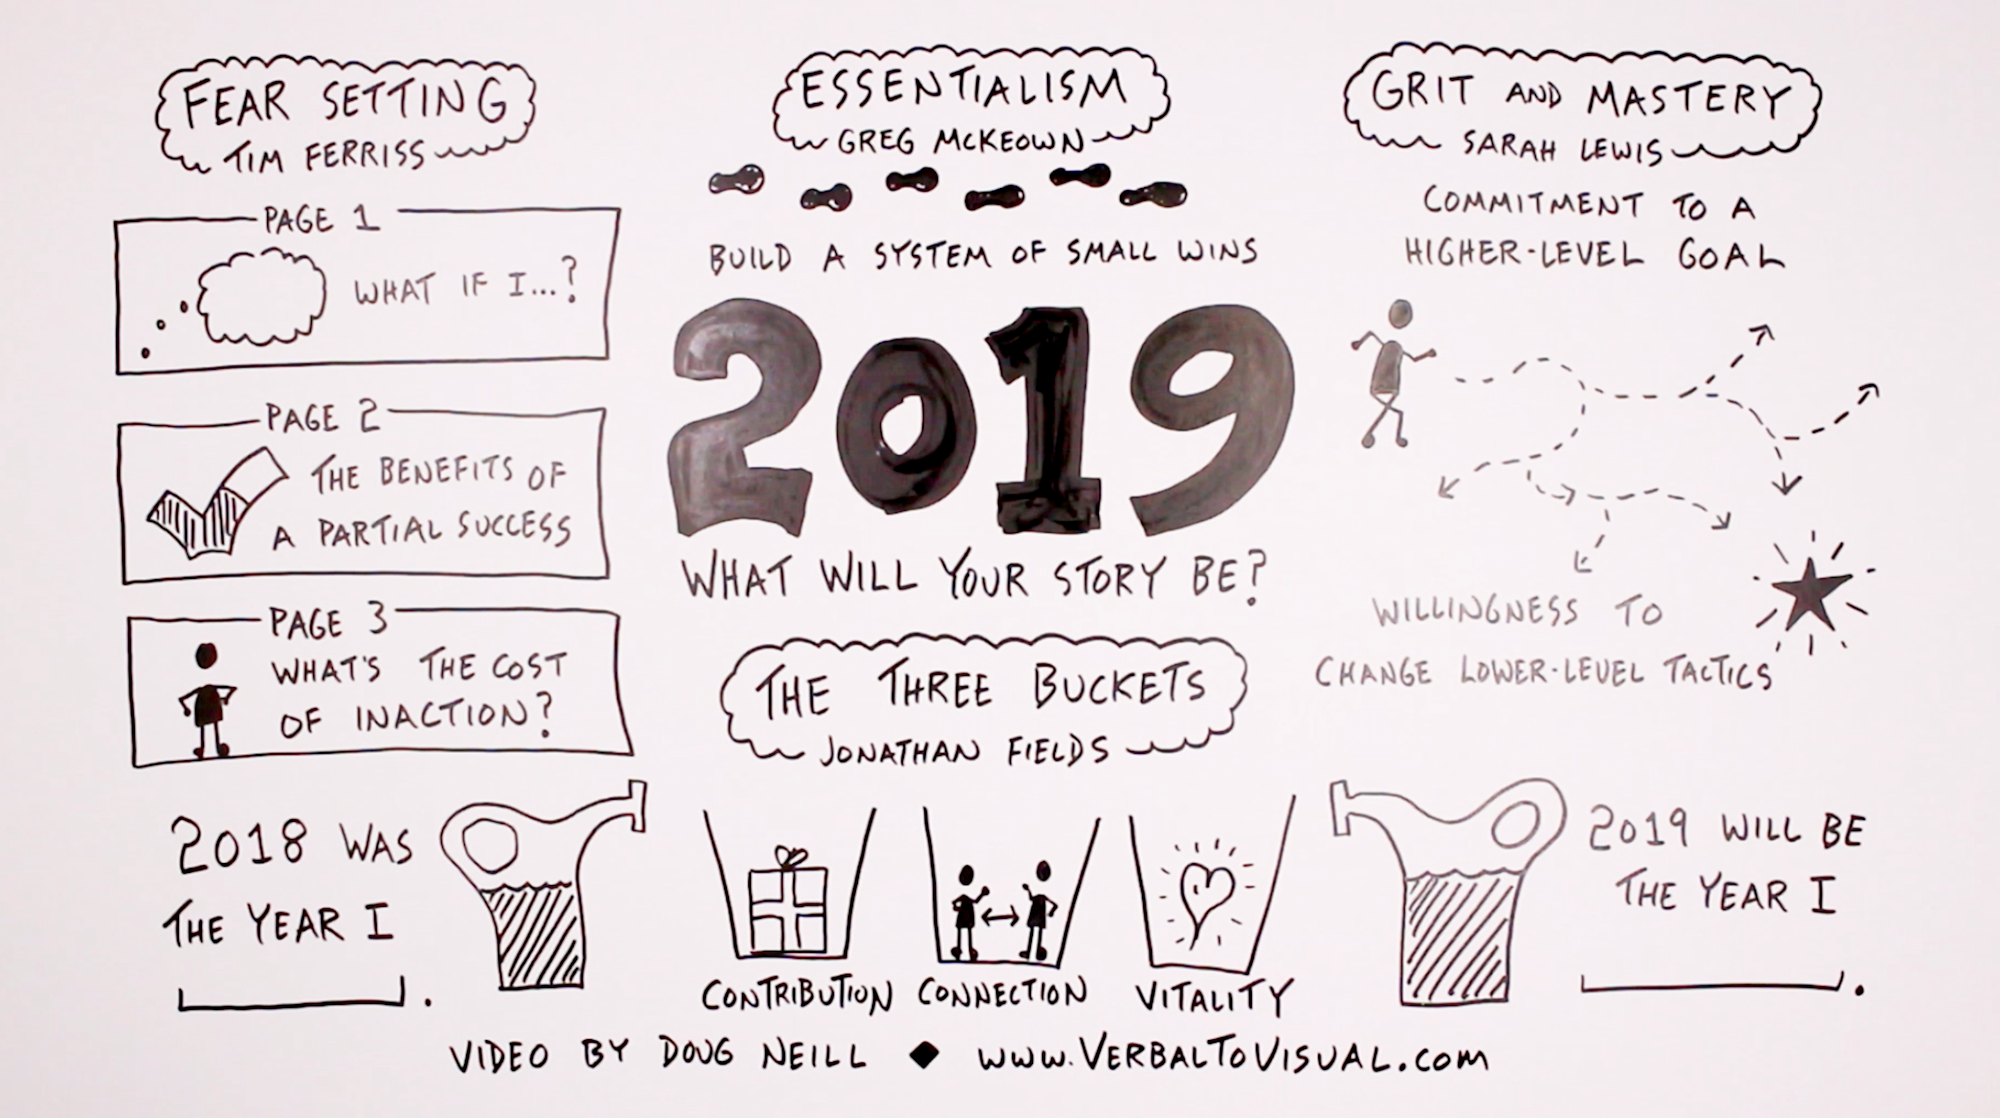 2019: What Will Your Story Be?; Verbal To Visual, Doug Neill, sketchnoting, visual note-taking; jonathan fields three buckets; tim ferriss fear setting; sarah lewis grit mastery; greg mckeown essentialism; annual review, new years resolution